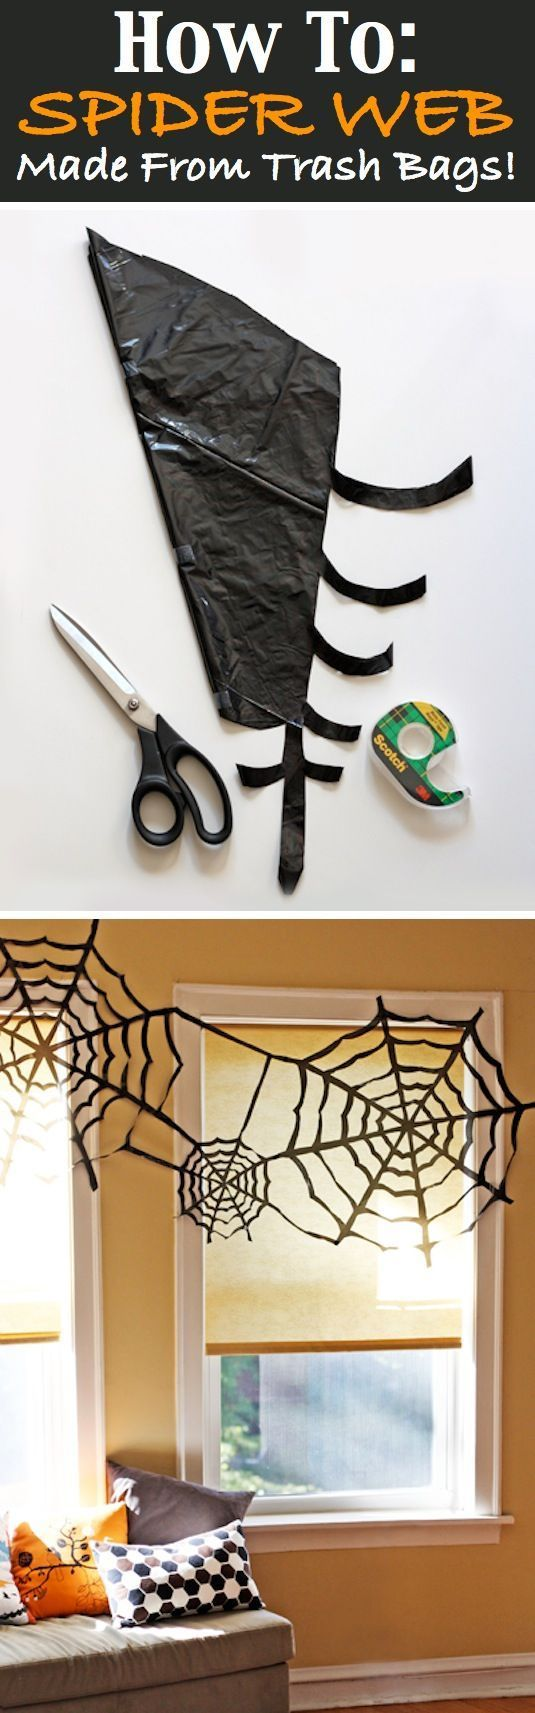 25 best ideas about homemade halloween decorations on Halloween decoration diy cheap